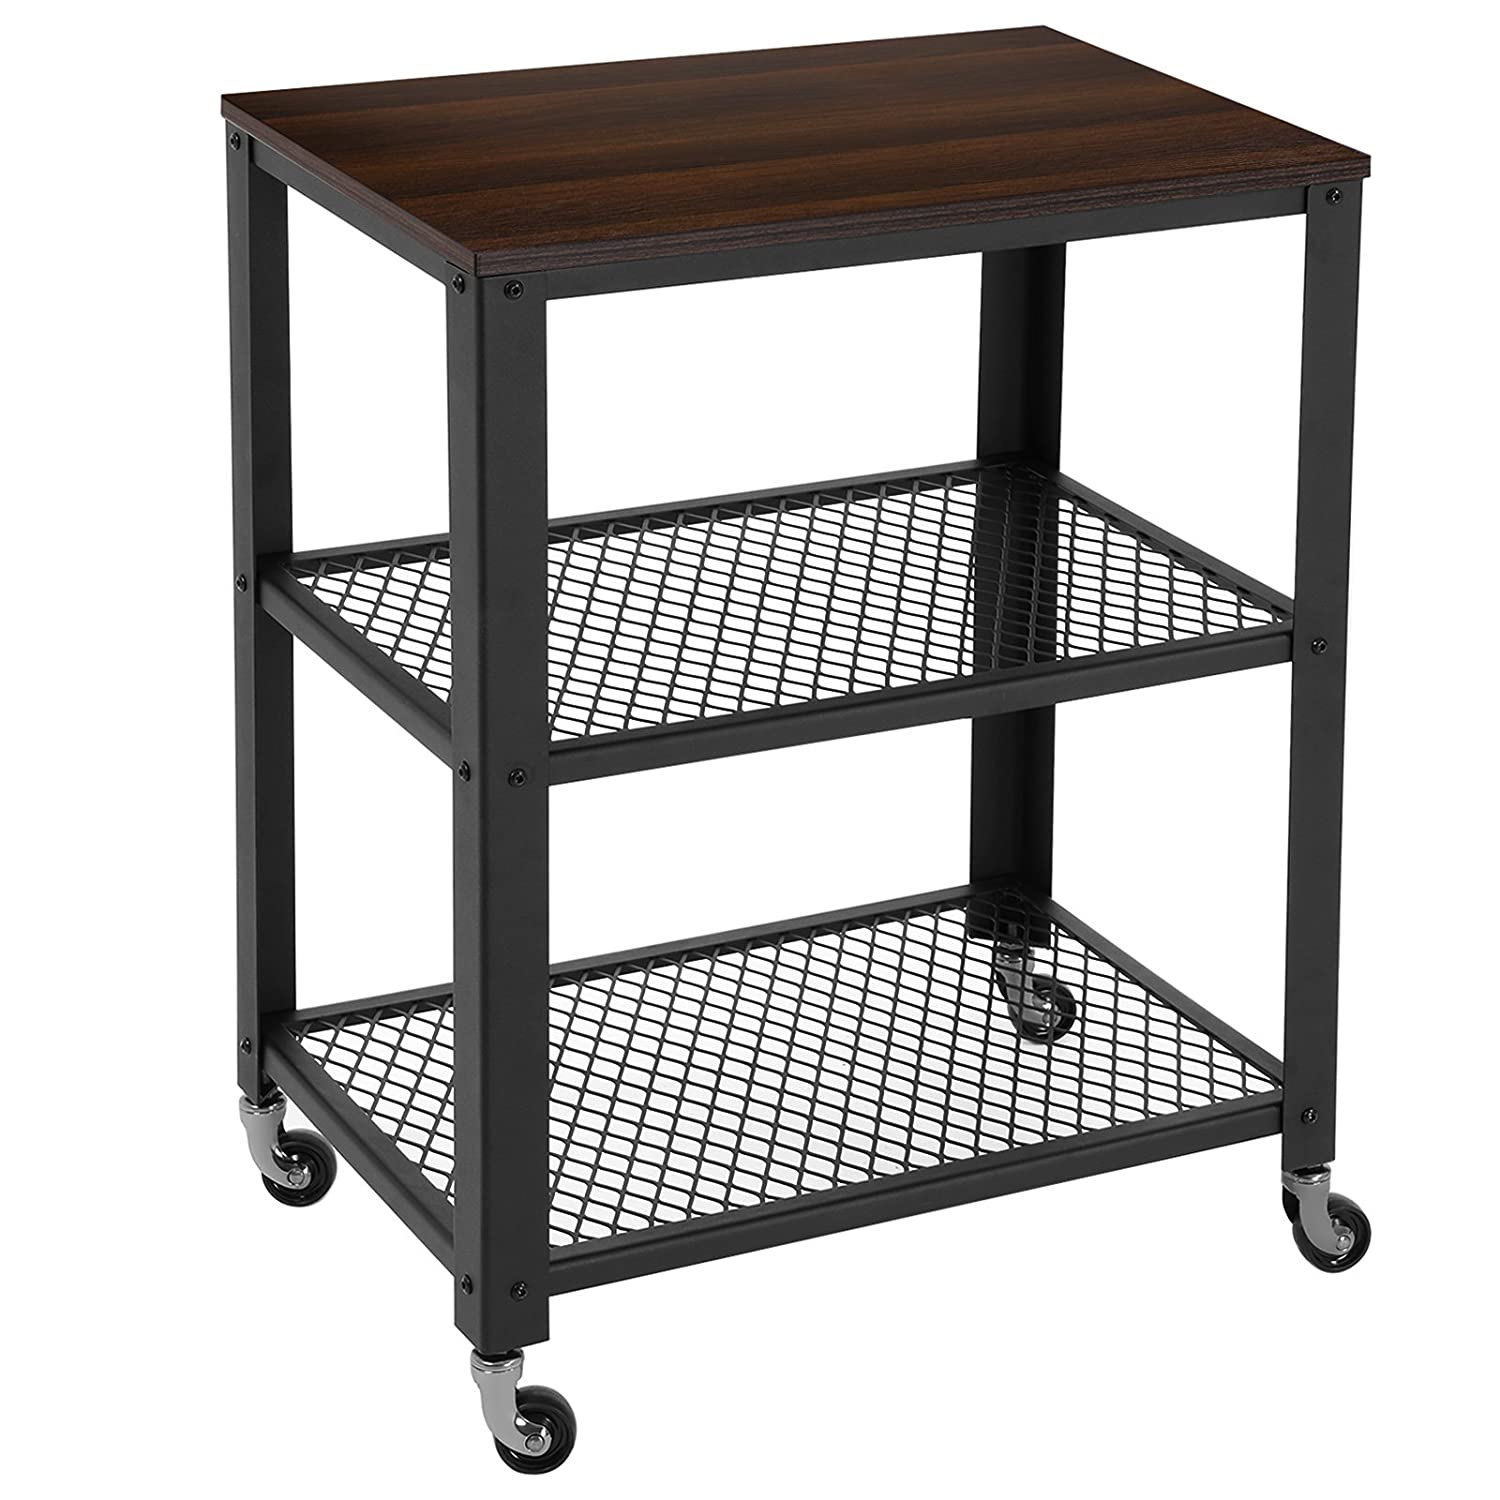 SONGMICS Rustic Kitchen Serving Cart Rolling Utility Storage Cart with 3-Tier Shelves Walnut ULRC78K